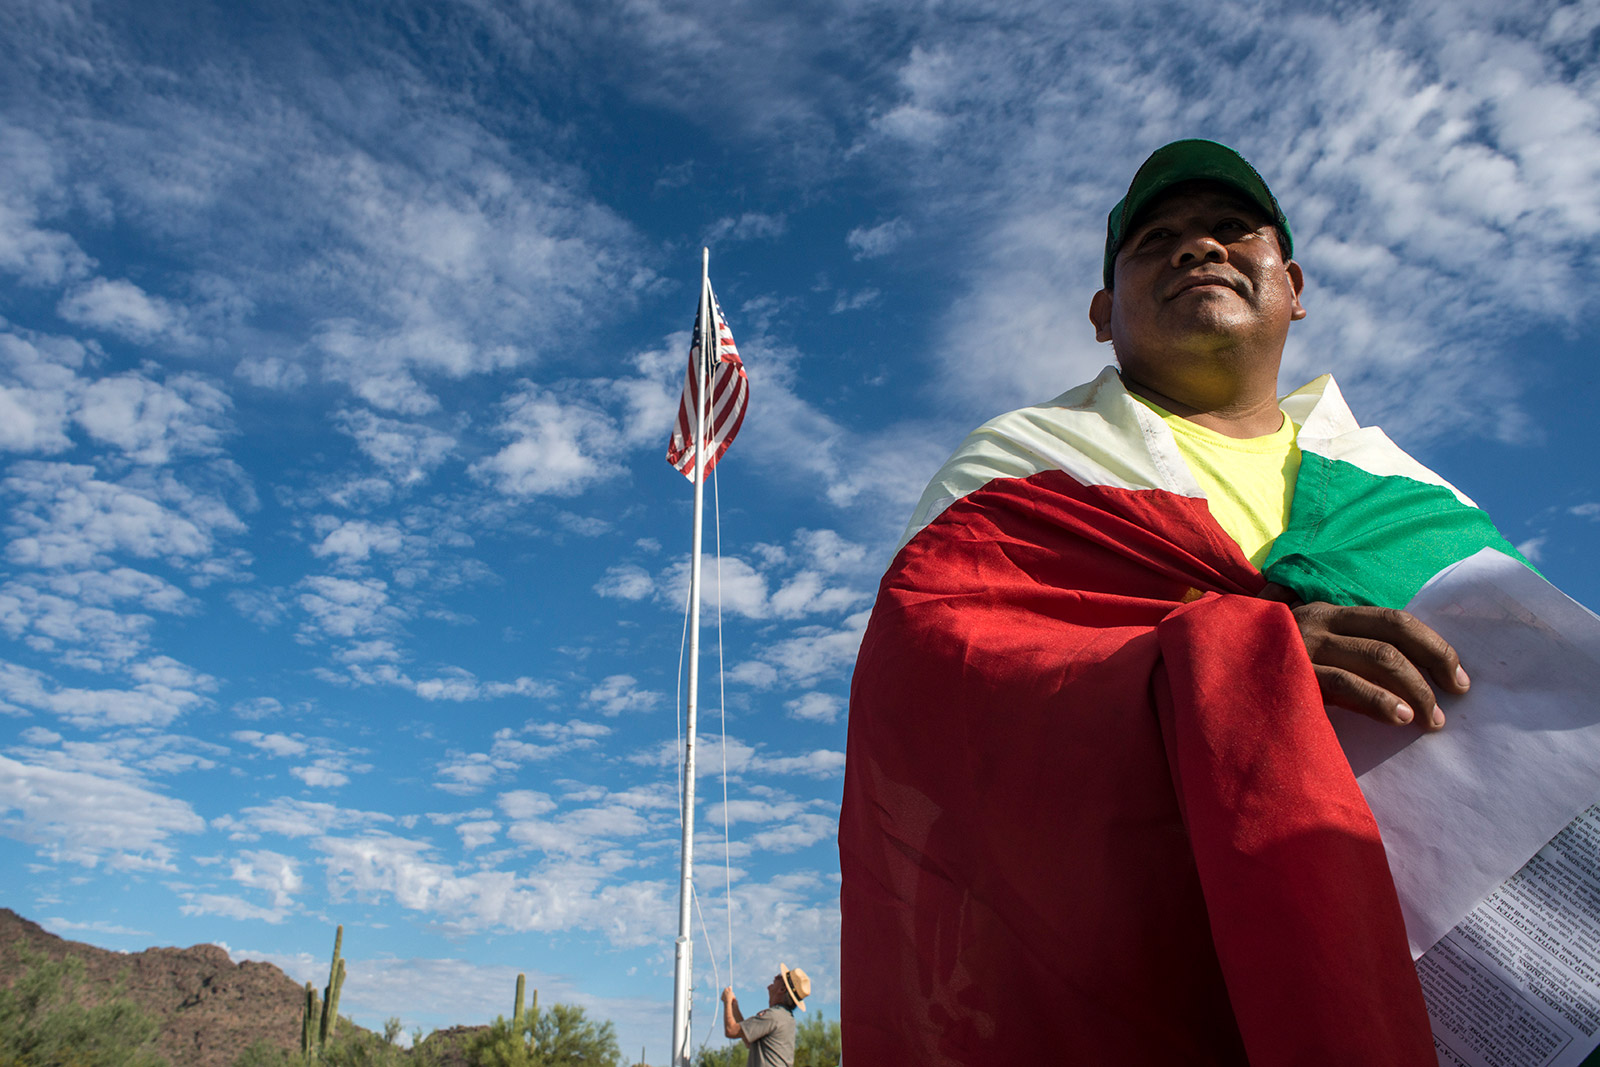 Aguilas Del Desierto volunteer Cesar Ortigoza listens to a safety briefing with a Mexico flag draped over his shoulders while standing outside the visitors center of Organ Pipe Cactus National Monument in Arizona on Aug. 26, 2017. <em>(Brandon Quester/inewsource)</em>